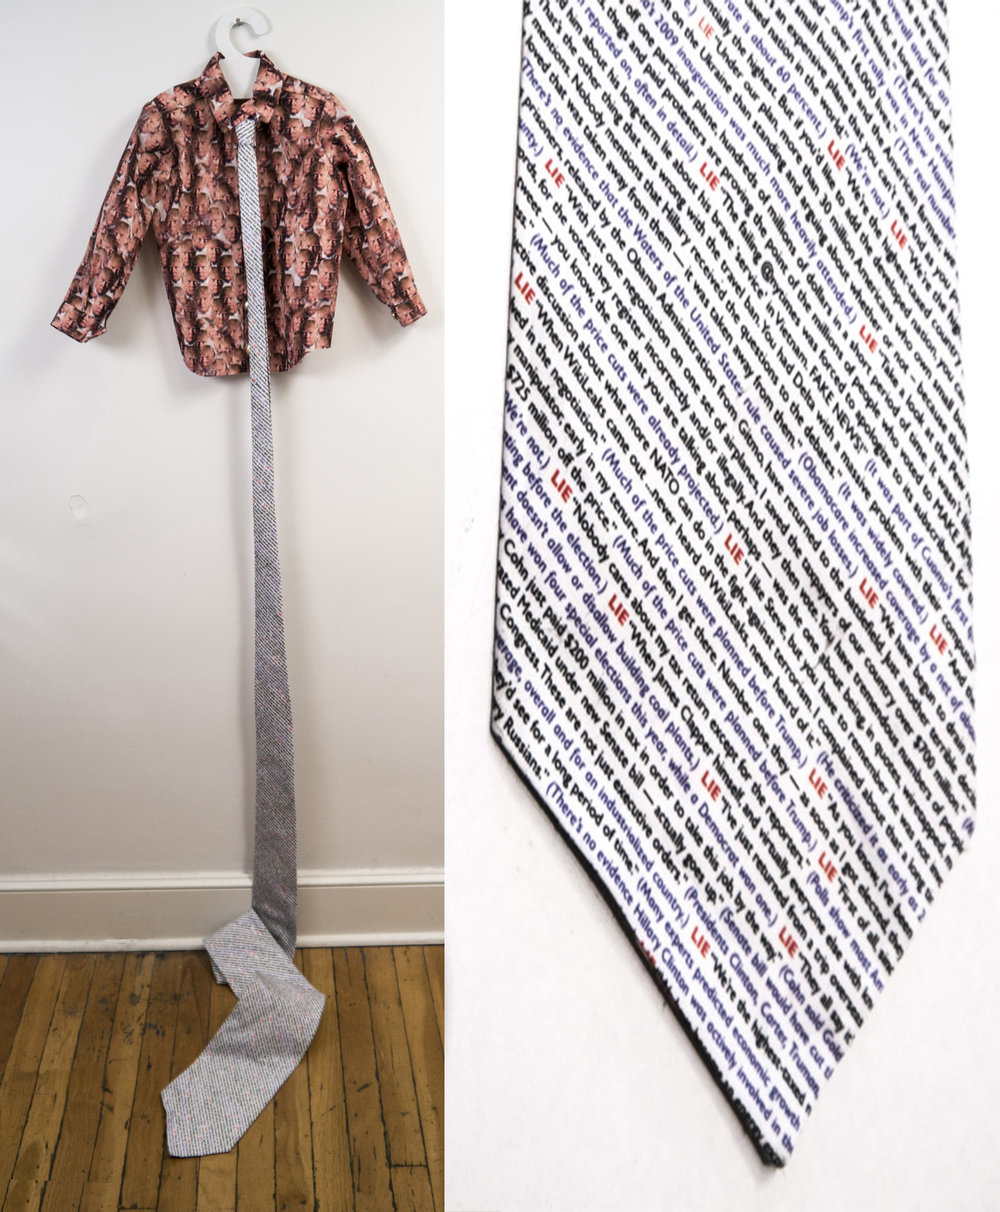 Liar's Coutu  re  , is comprised of a toddler shirt sewn from digitally printed fabric with faces of the 45th President of the United States, and a hand sewn tie created with digitally fabric, that was printed with text of the lies of the president, beginning with his campaign in 2016 through December 2017. Created for the exhibition,  Disillusionment at Taller Boricua in New York City.  More information about the show can be found  here